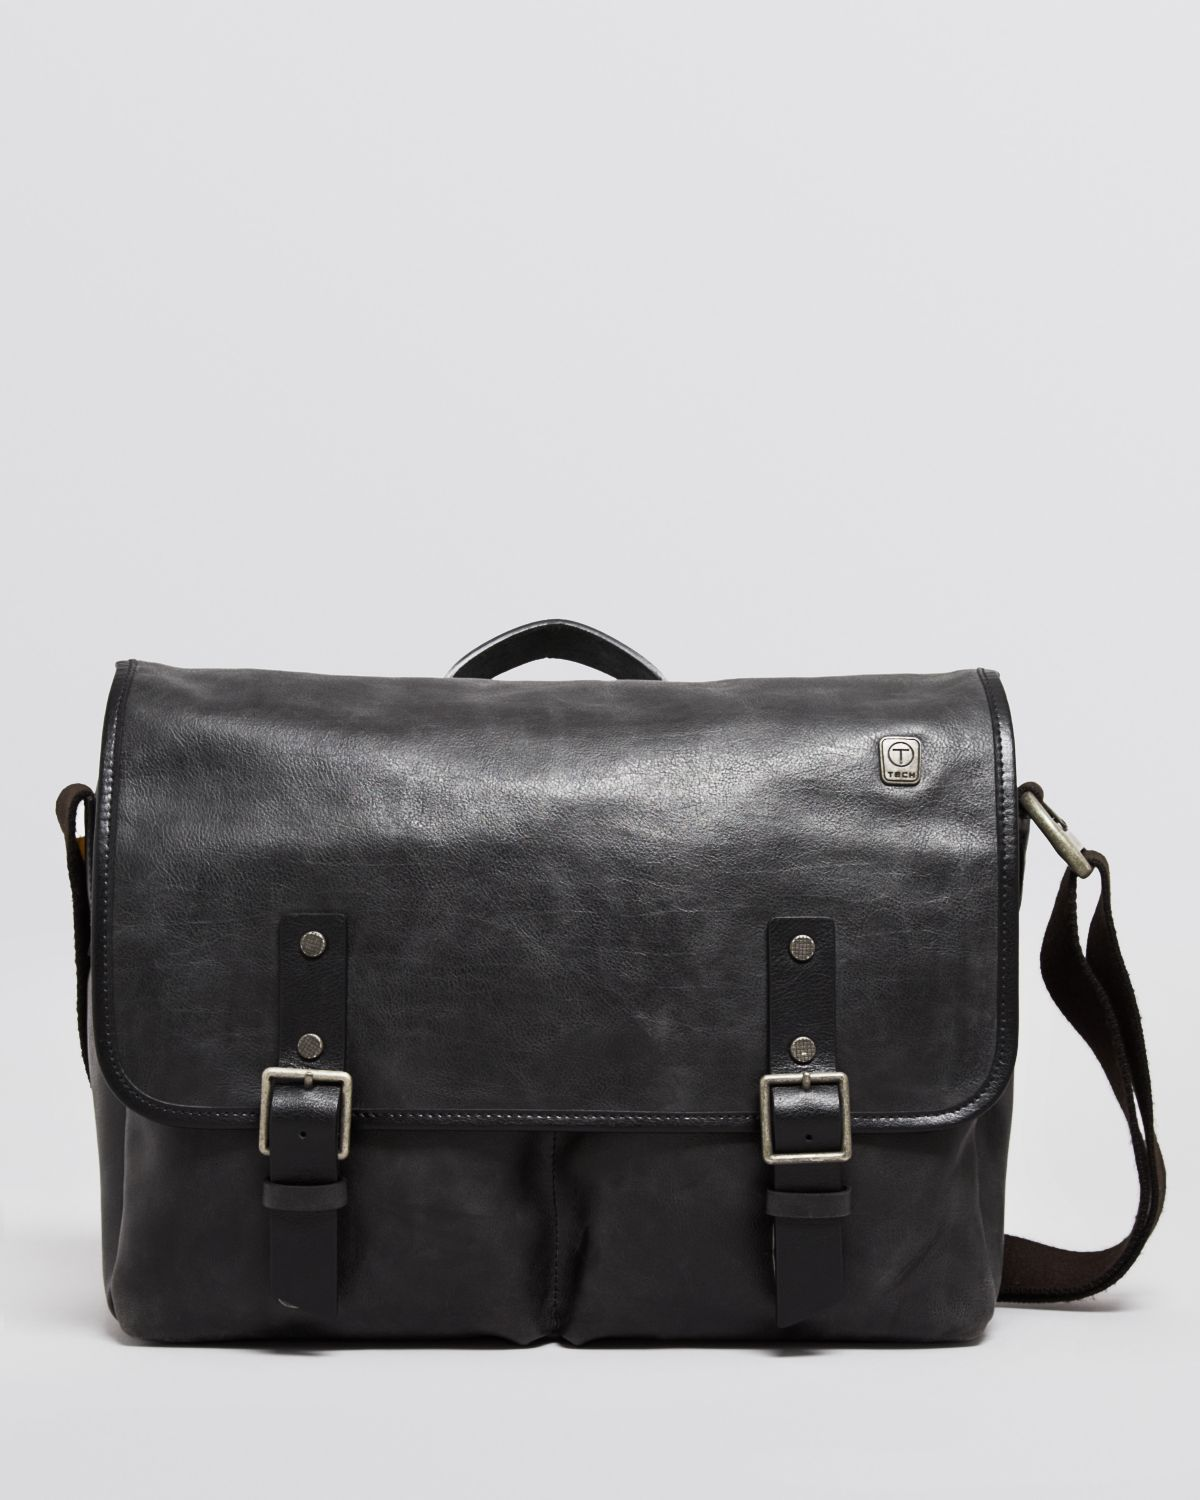 T-tech by tumi Tumi T-Tech Forge Bingham Messenger Bag in Black ...